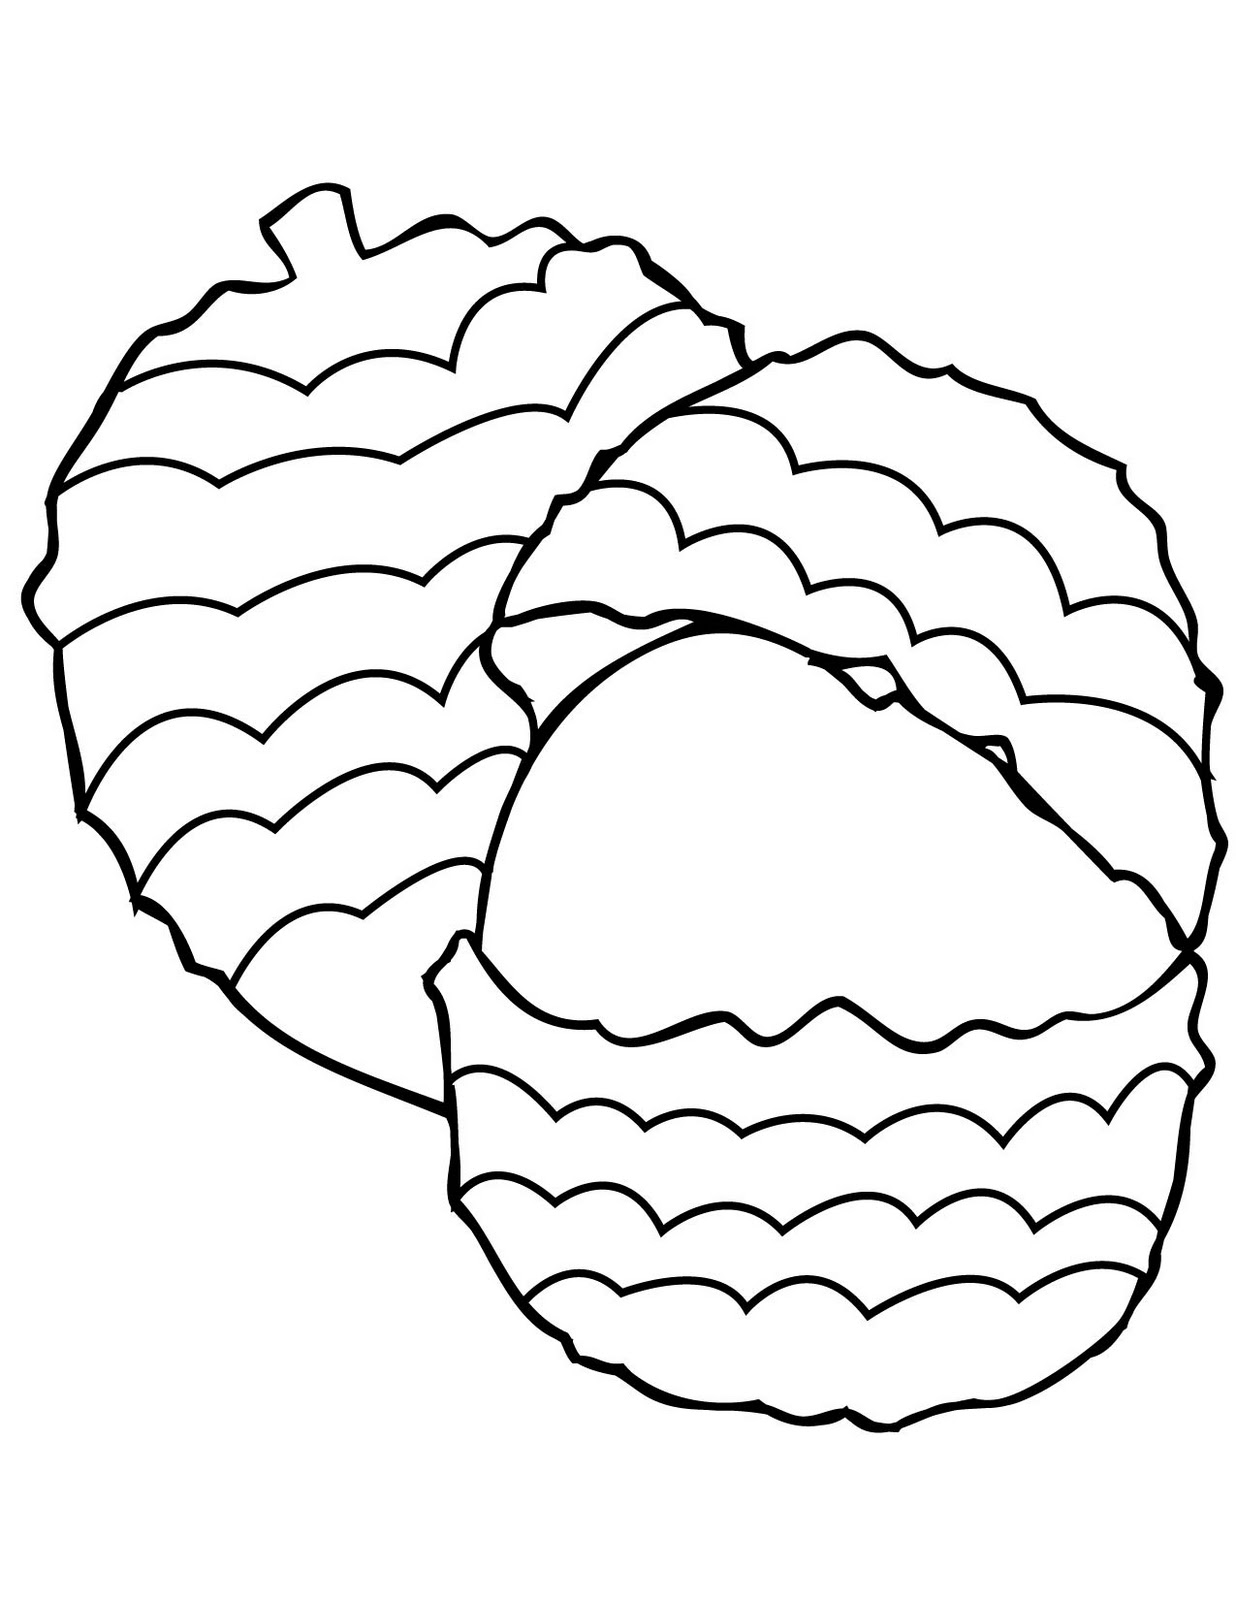 Fruit And Vegetable Coloring Pages